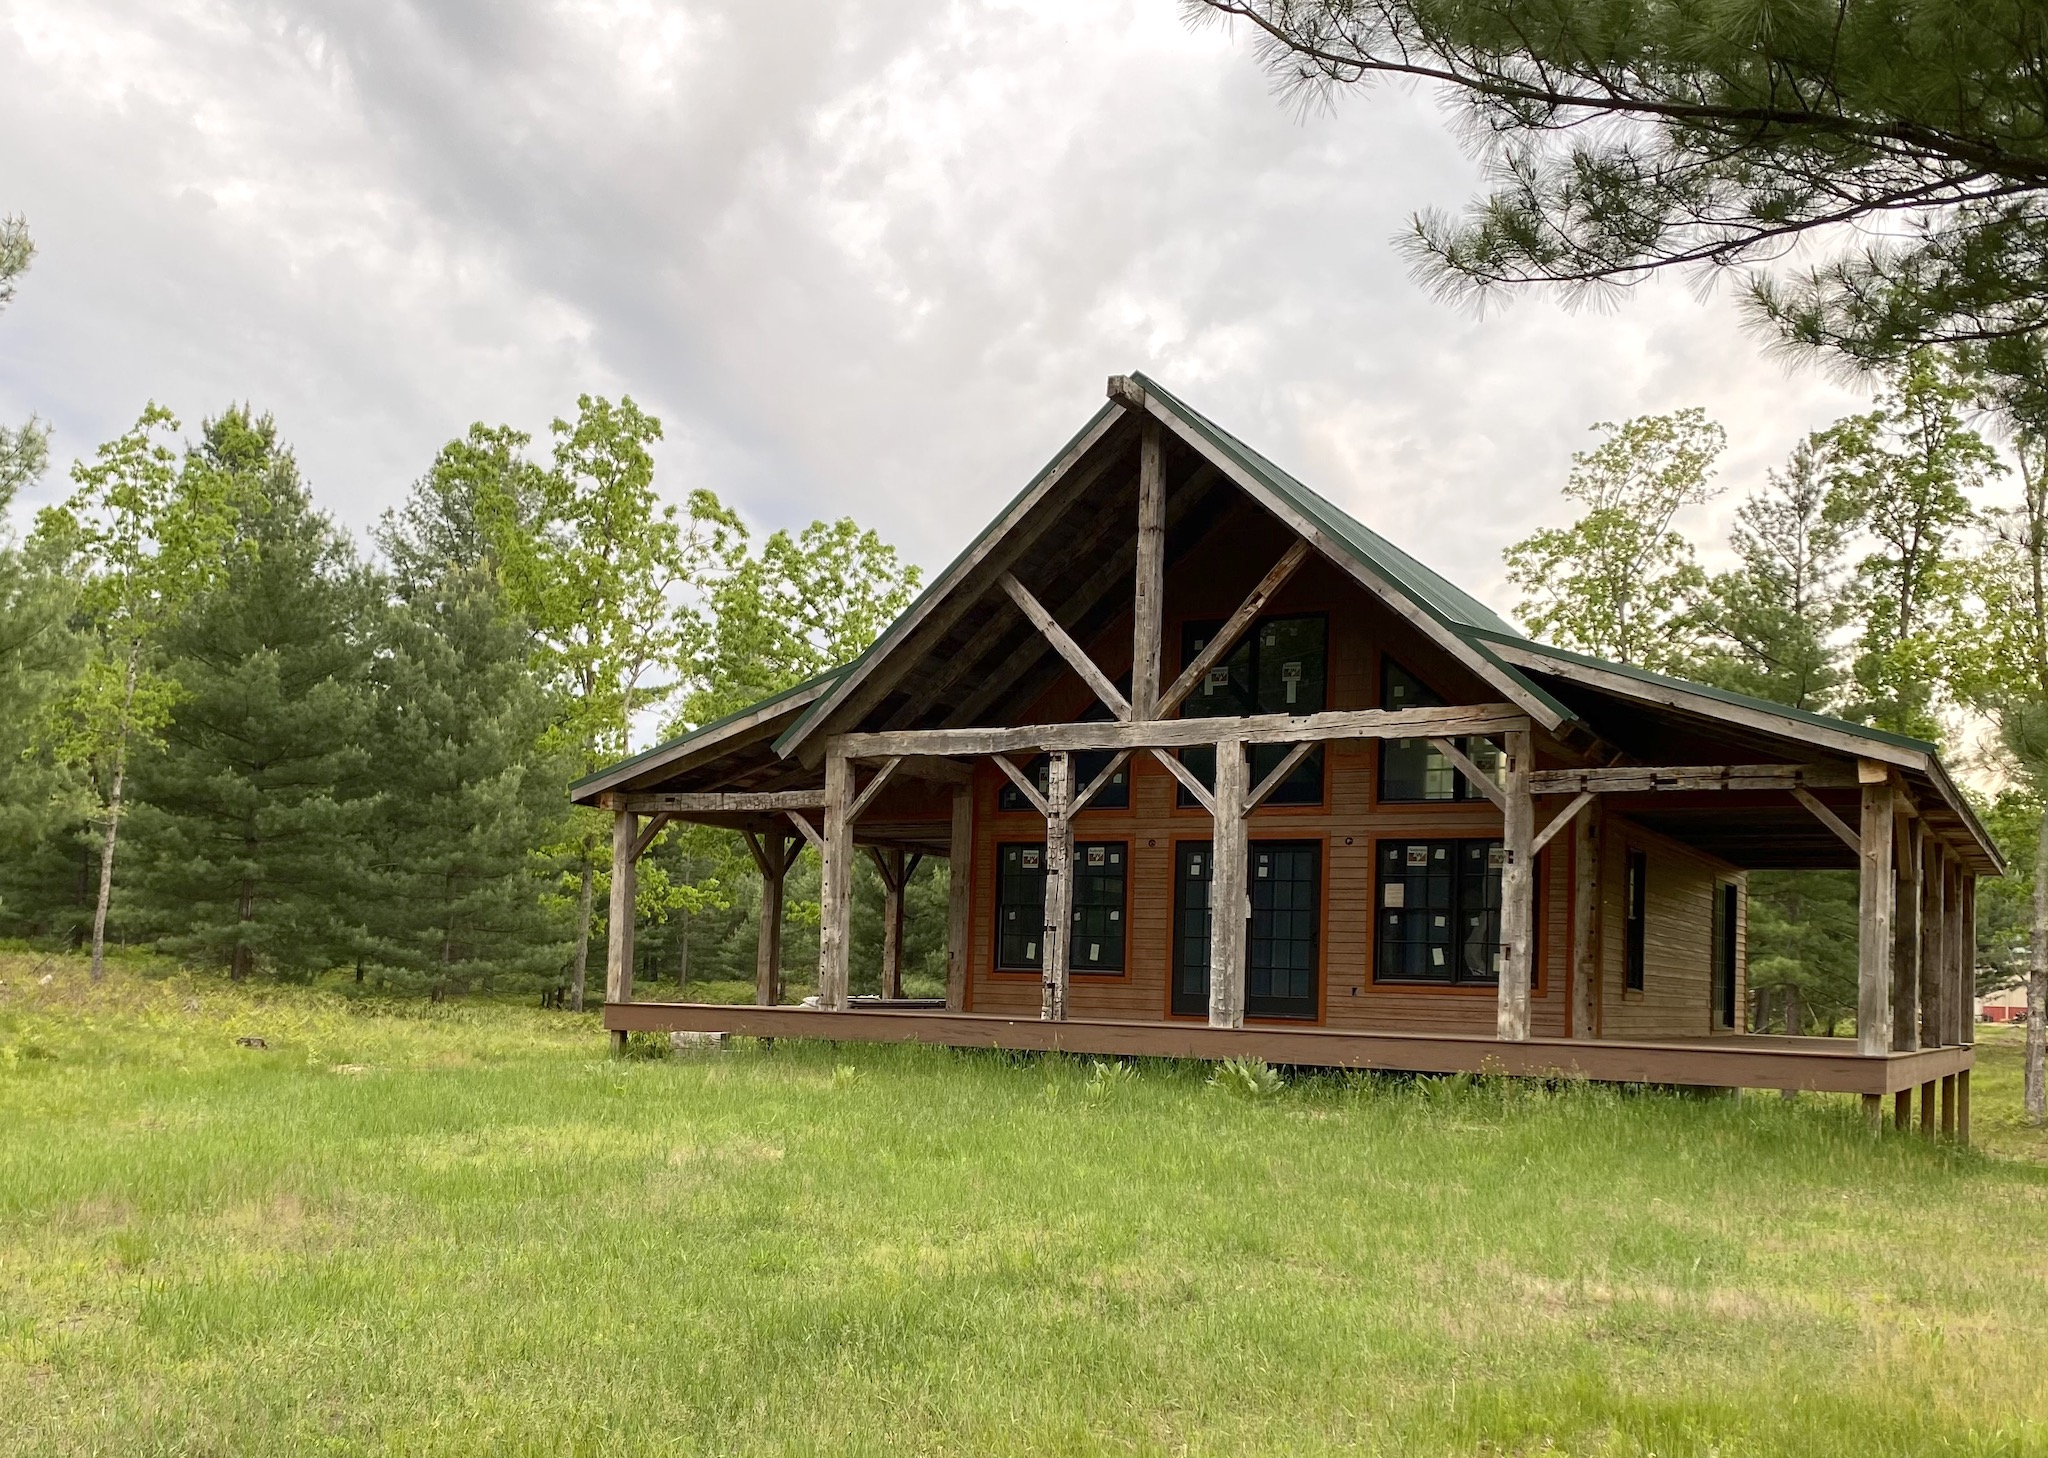 Cabin in state of renovation, like the HIPAA Privacy Rule modifications